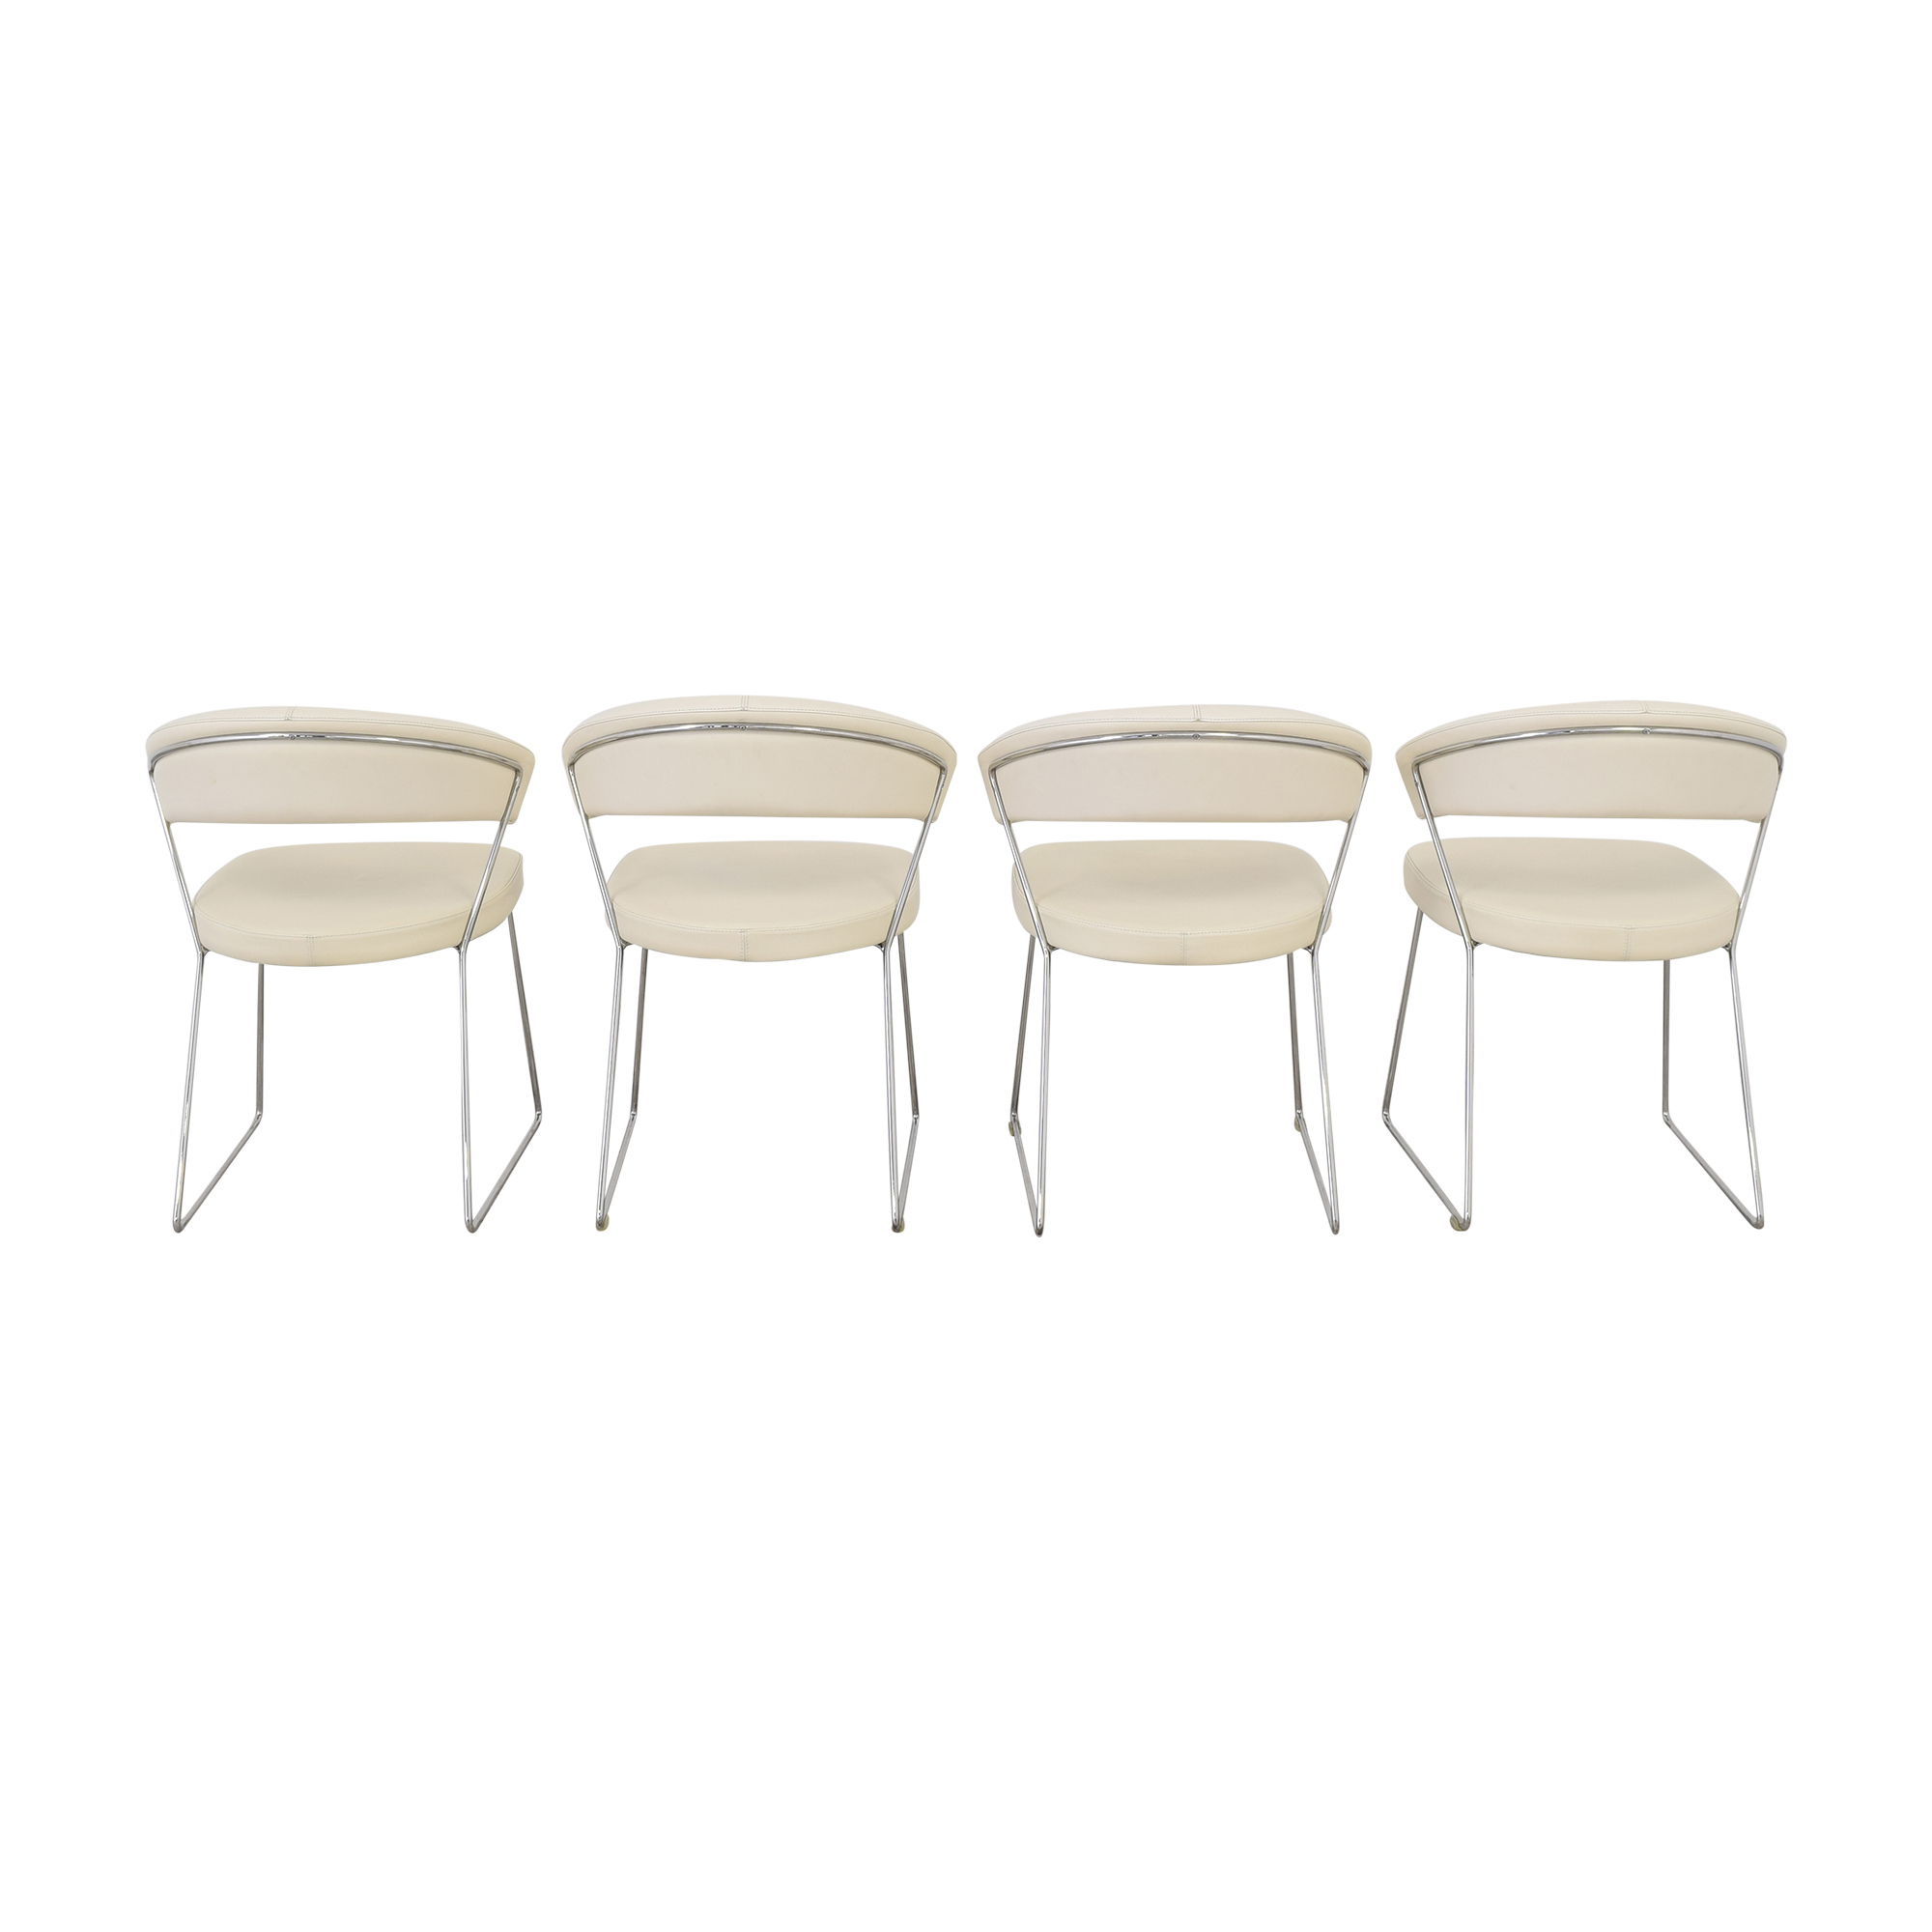 Calligaris Calligaris Icon Modern Dining Chairs coupon